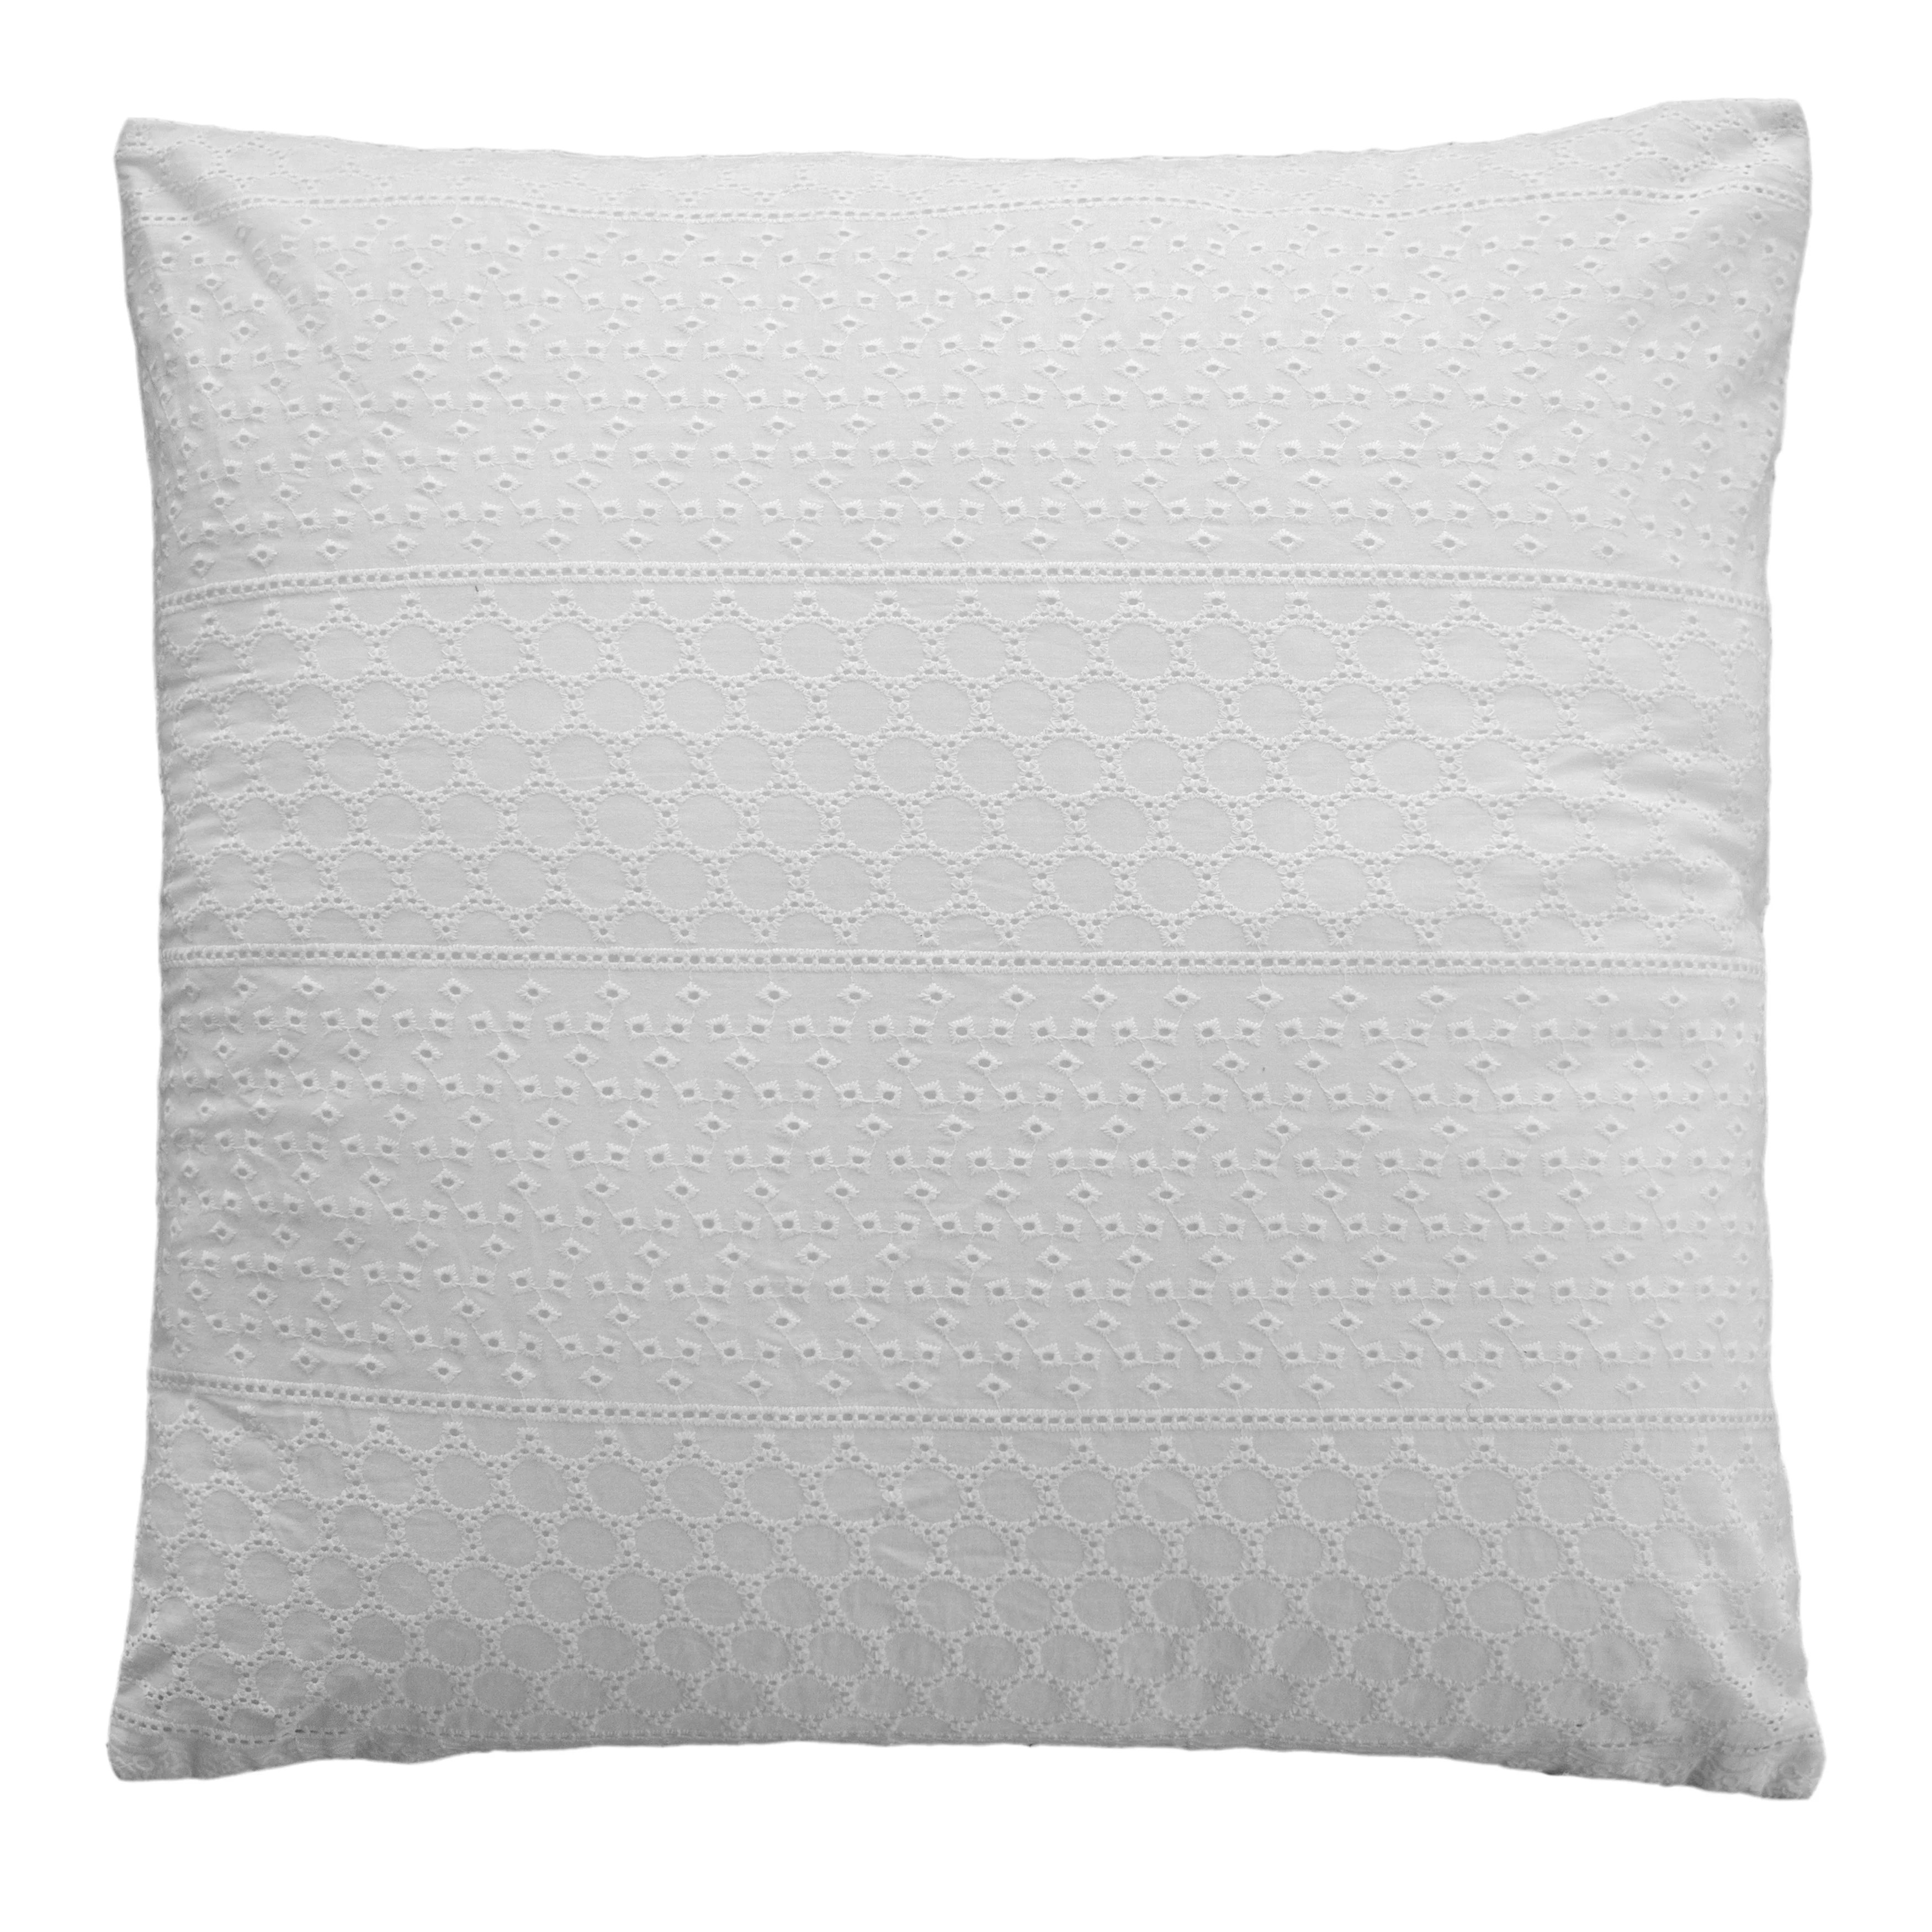 lace euro pillow cover 26x26 cover only white eyelet